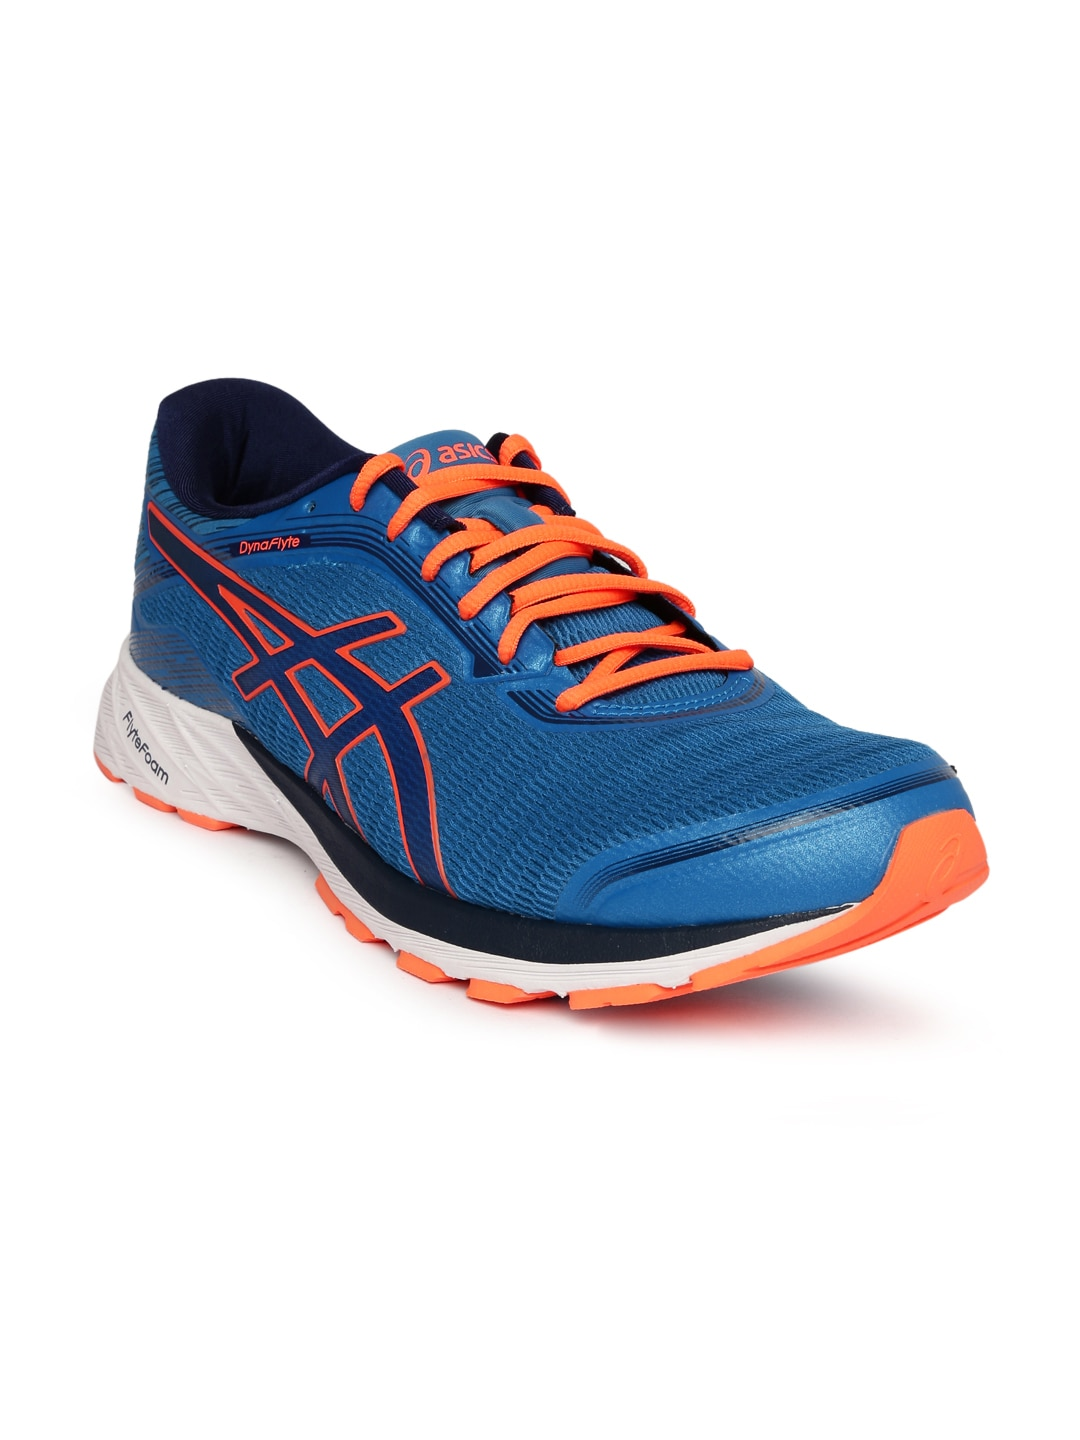 Best Shoes For Long Distance Running India